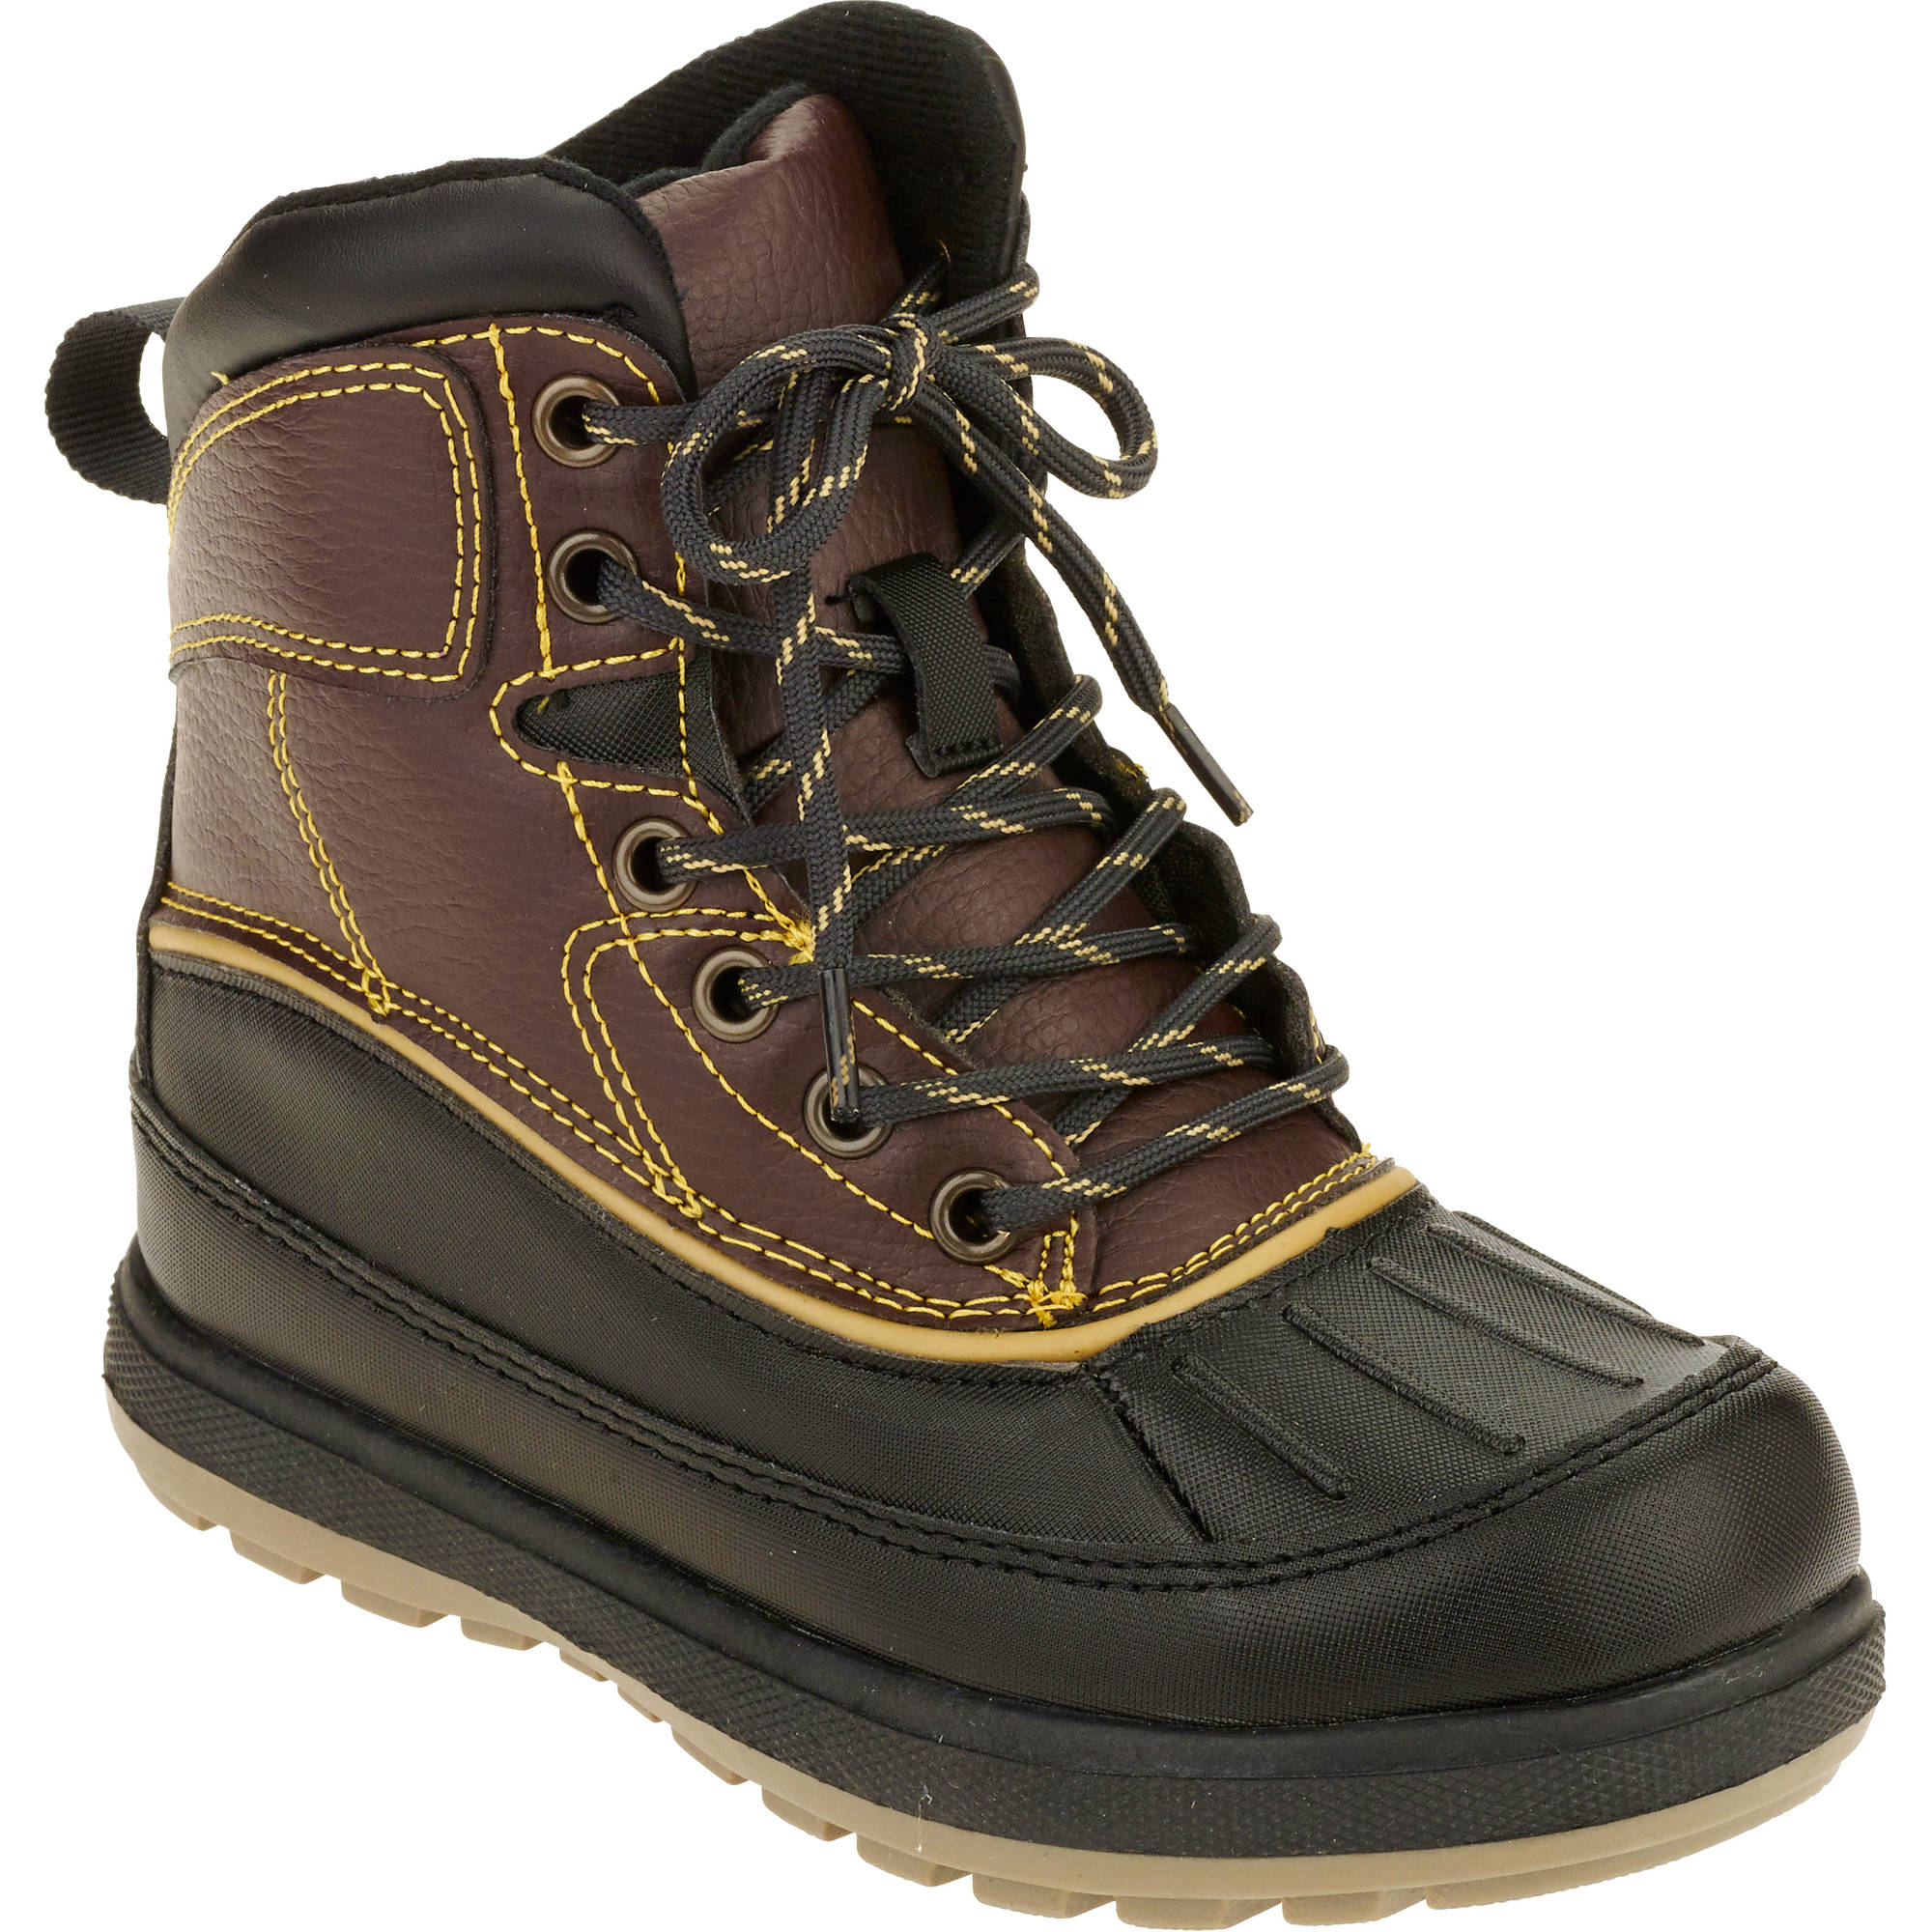 Ozark Trail Boys' Lace Up Winter Boot